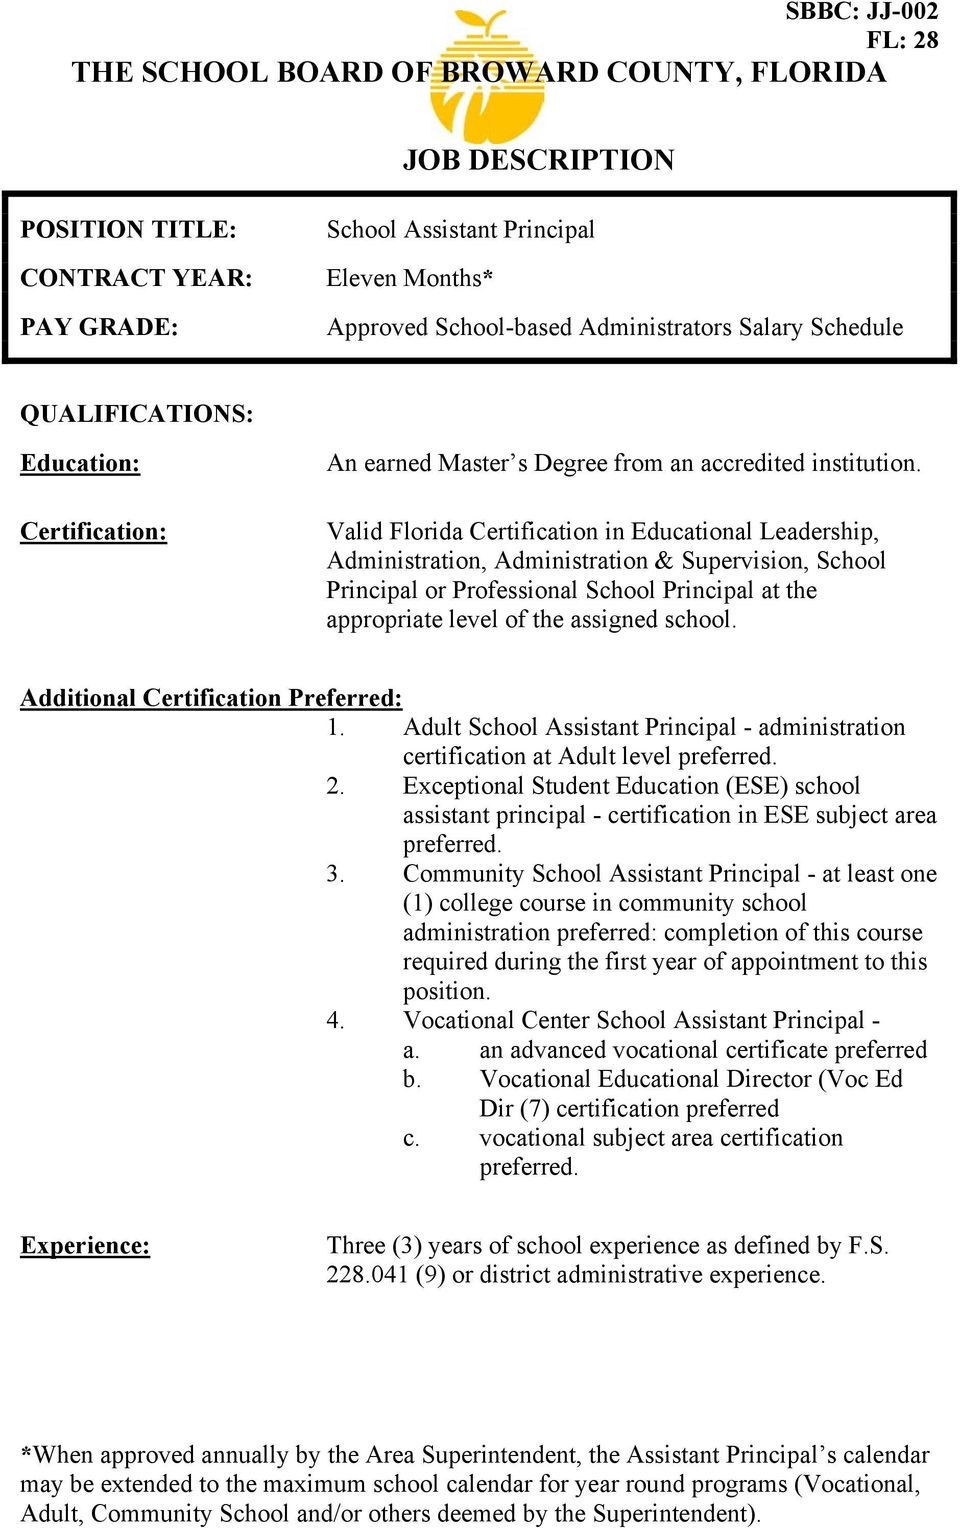 Valid Florida Certification in Educational Leadership, Administration, Administration & Supervision, School Principal or Professional School Principal at the appropriate level of the assigned school.